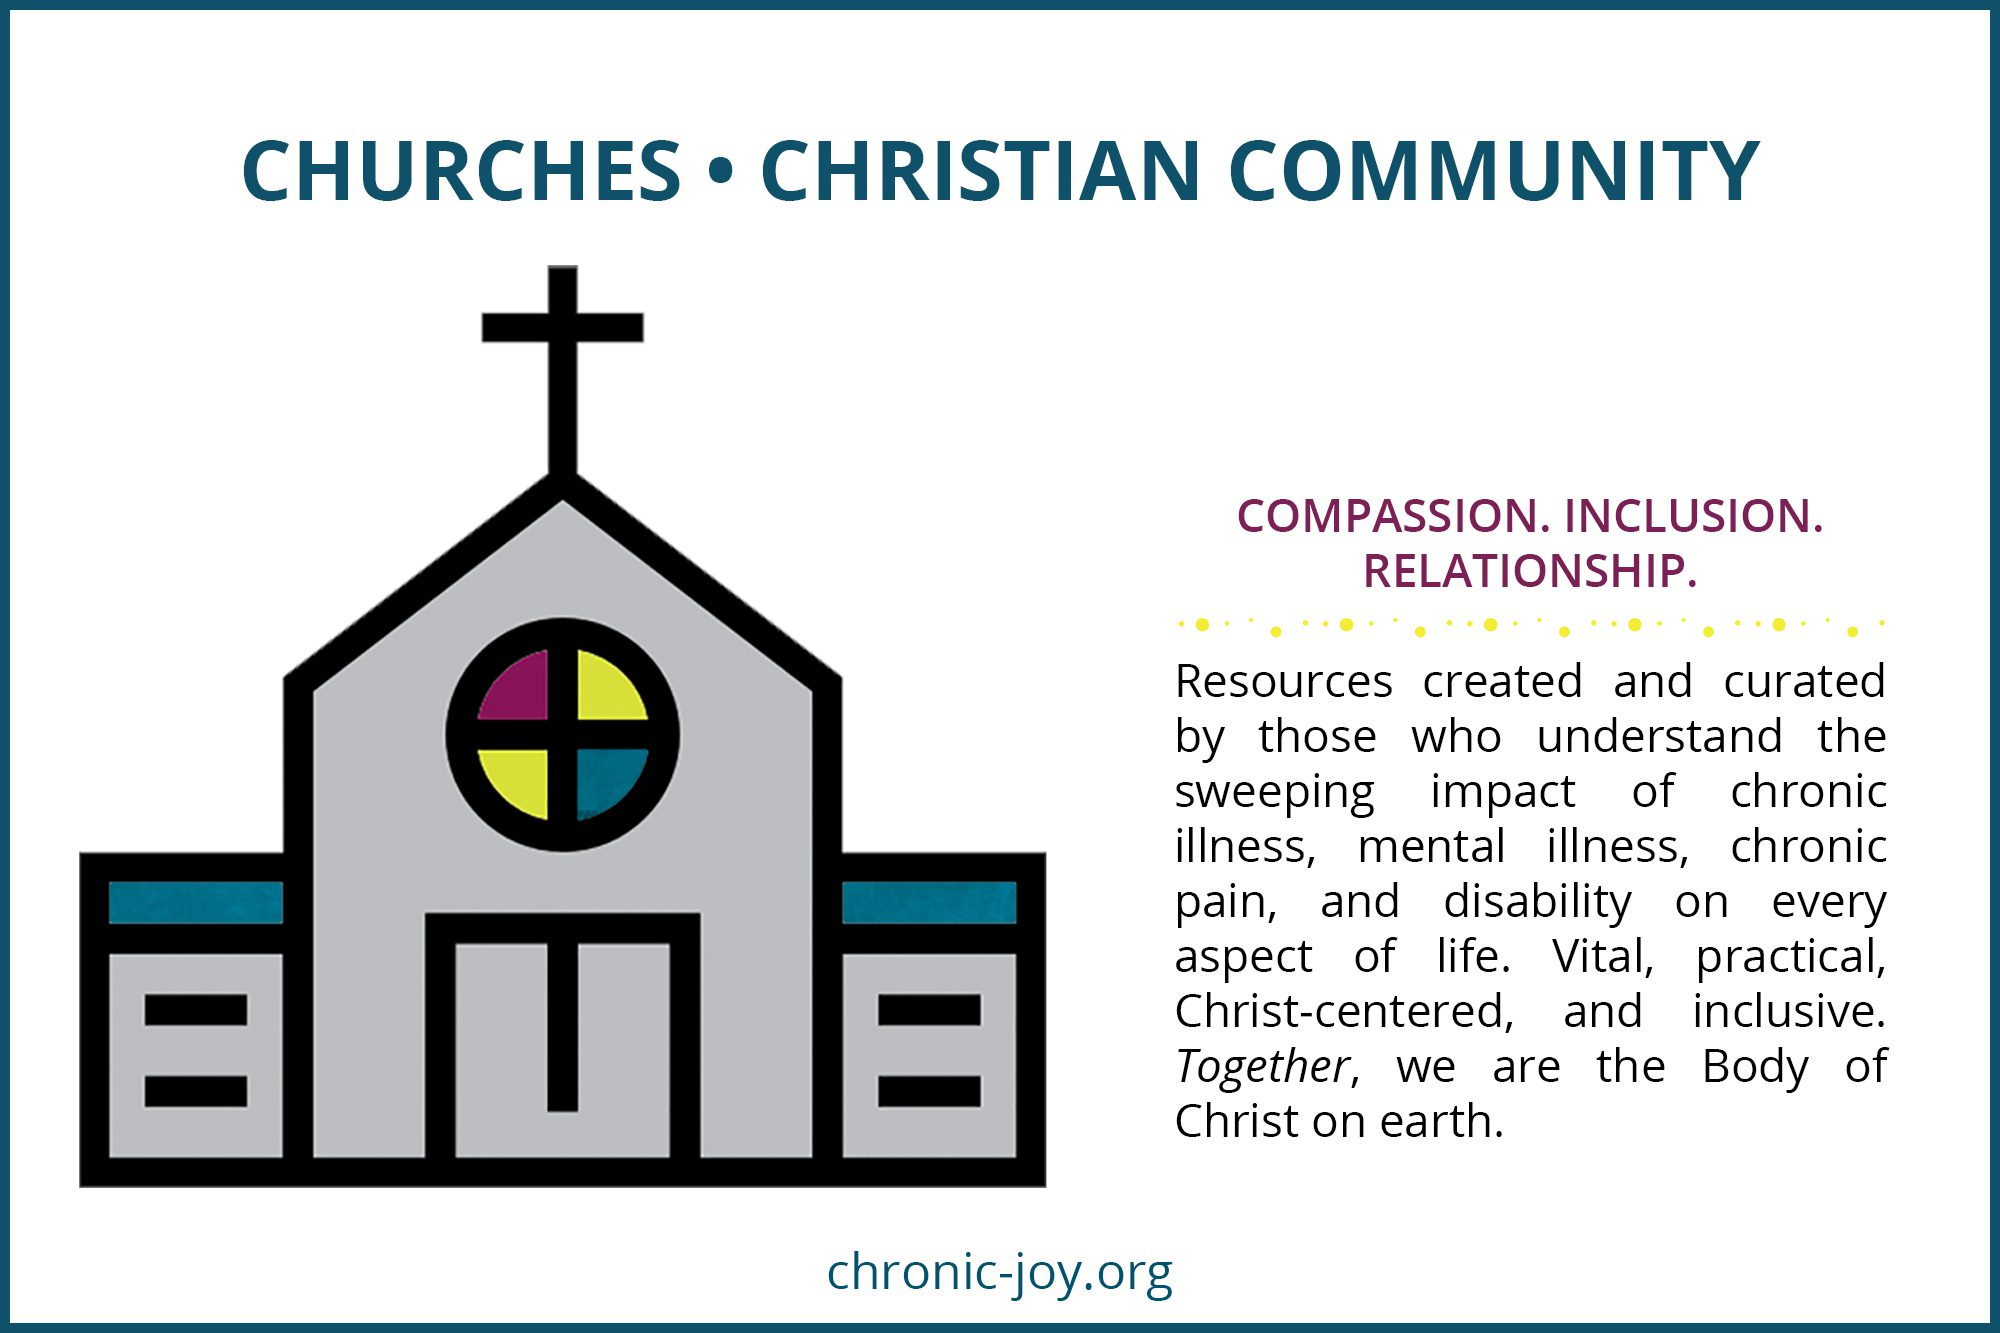 COMPASSION. INCLUSION. RELATIONSHIP. Resources created and curated by those who understand the sweeping impact of chronic illness, mental illness, chronic pain, and disability on every aspect of life. Vital, practical, Christ-centered, and inclusive. Together, we are the Body of Christ on earth.